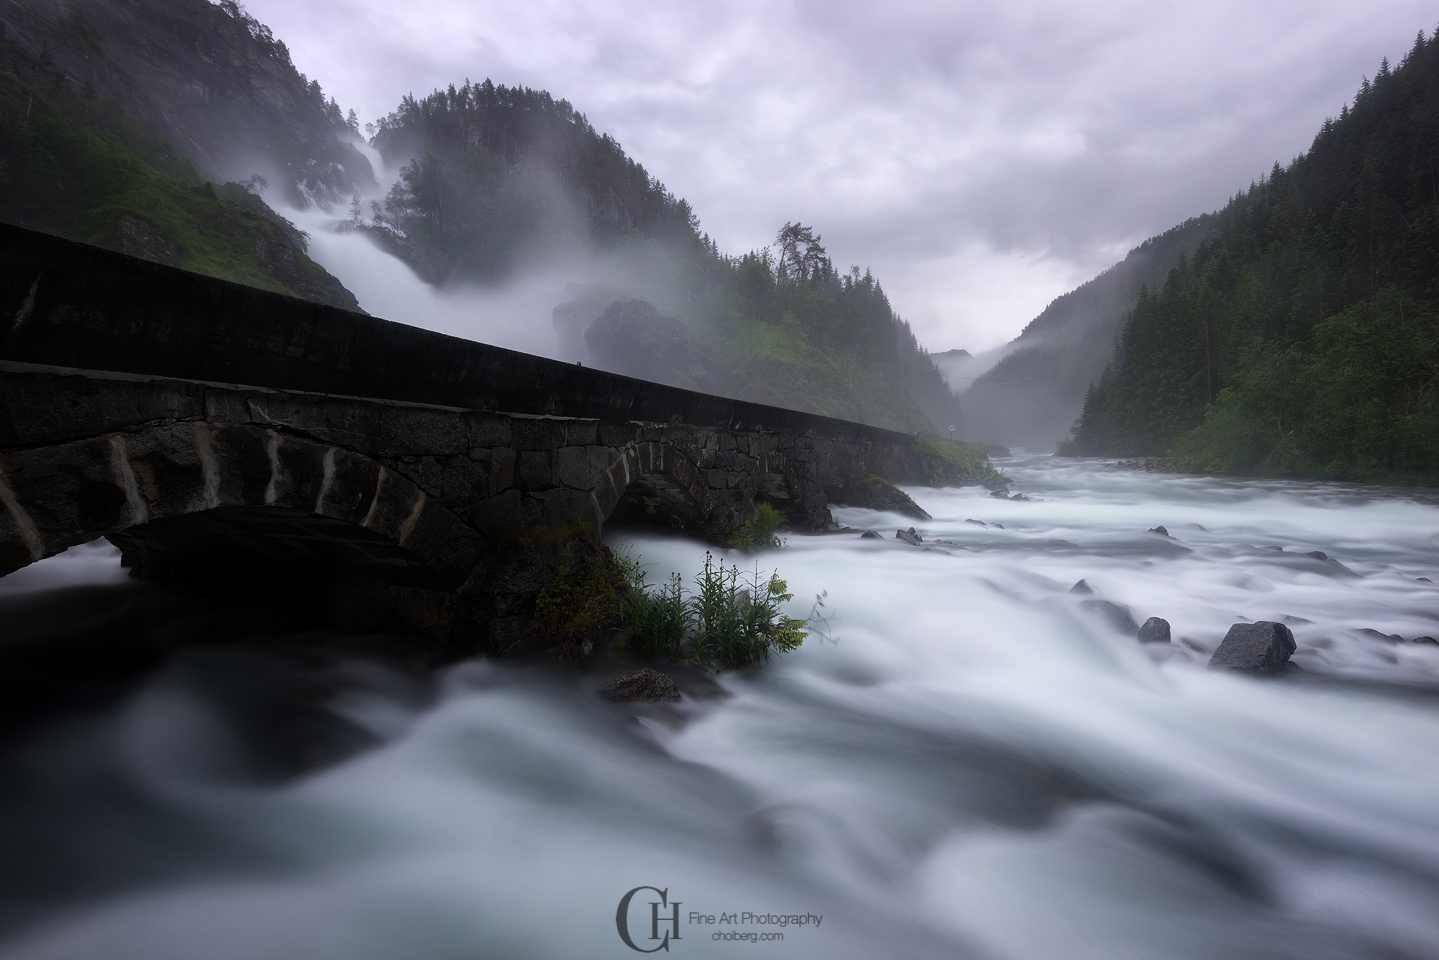 Laatefossen, odda during a cloudy mornig. the water level was so high it was nearly impossible to photograph the falls